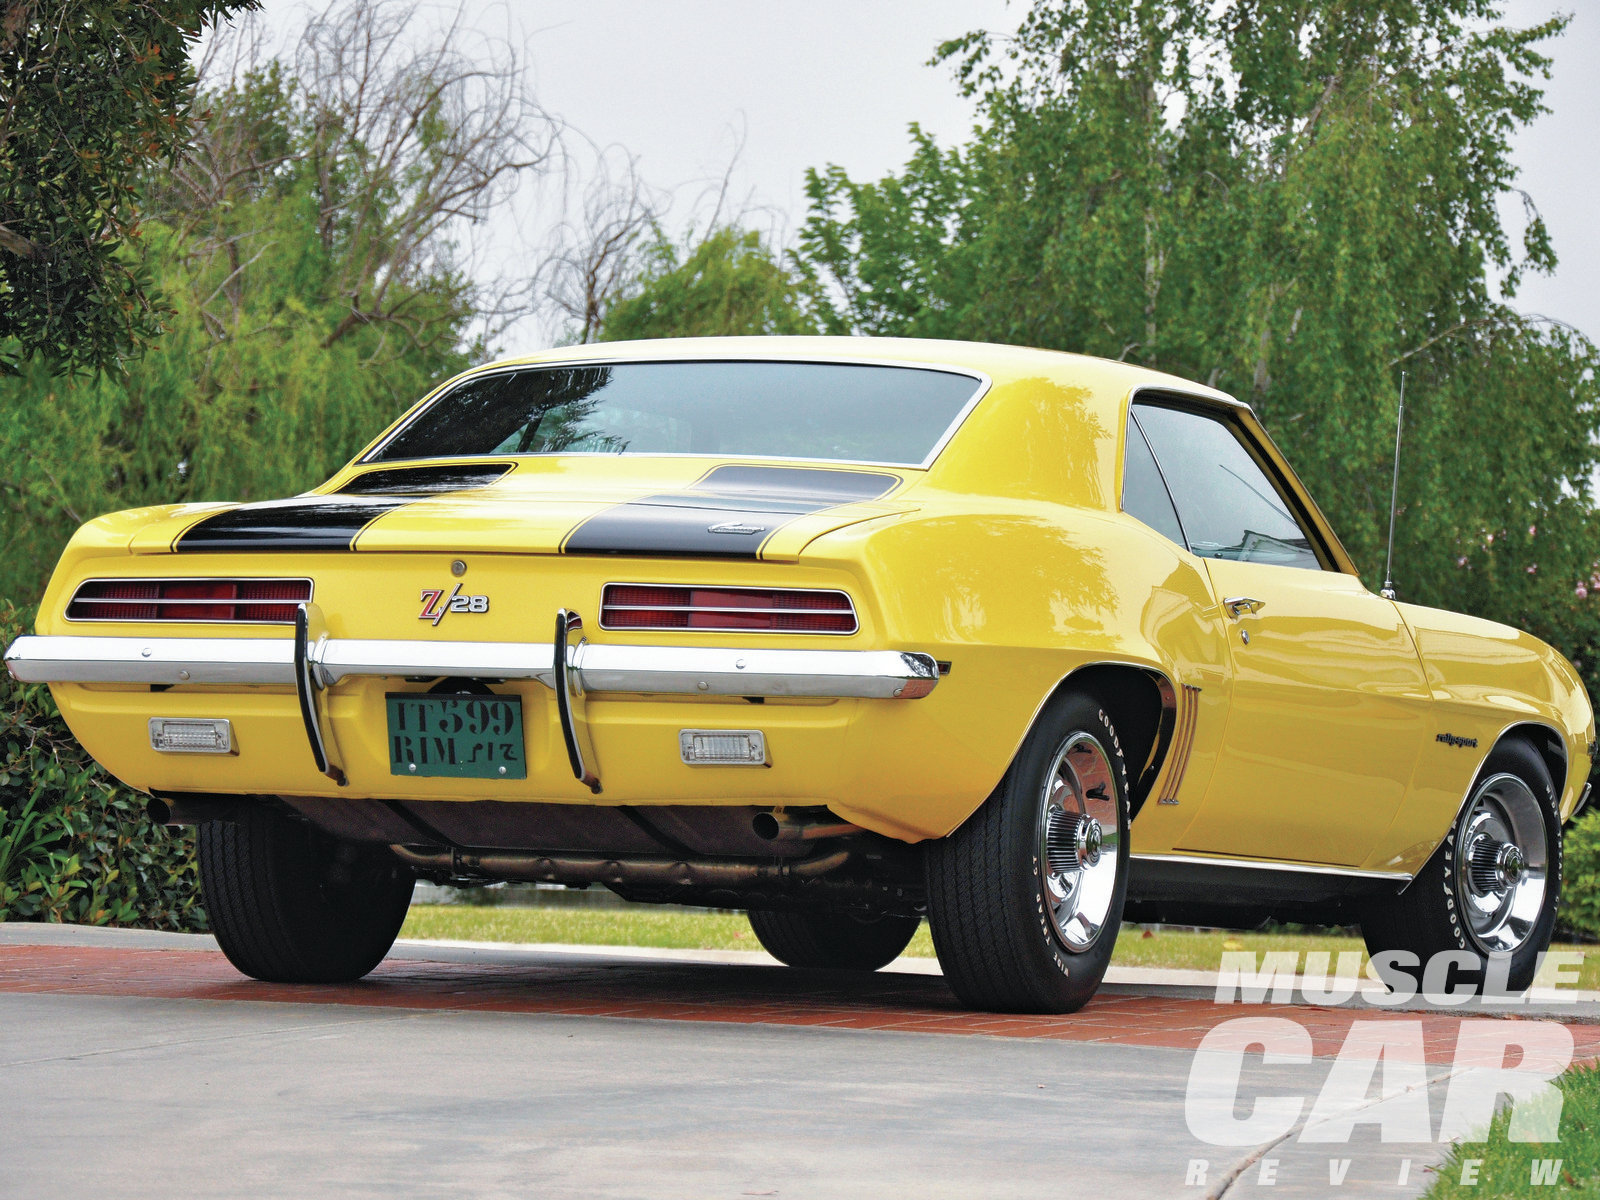 The 12-bolt Positraction rear spins 3.73 gears. All '69 Z/28s had rear bumper guards. Most Z/28s had the G31 four-leaf spring packs, which some believe altered the ride height enough to require the use of the rear bumper guards. A few documented Z/28s have been discovered to have been built with the five-leaf rear springs. Correct Goodyear Polyglas E70-15 tires and Rally wheels serve as the perfect complement to the rocker and wheelwell trim.